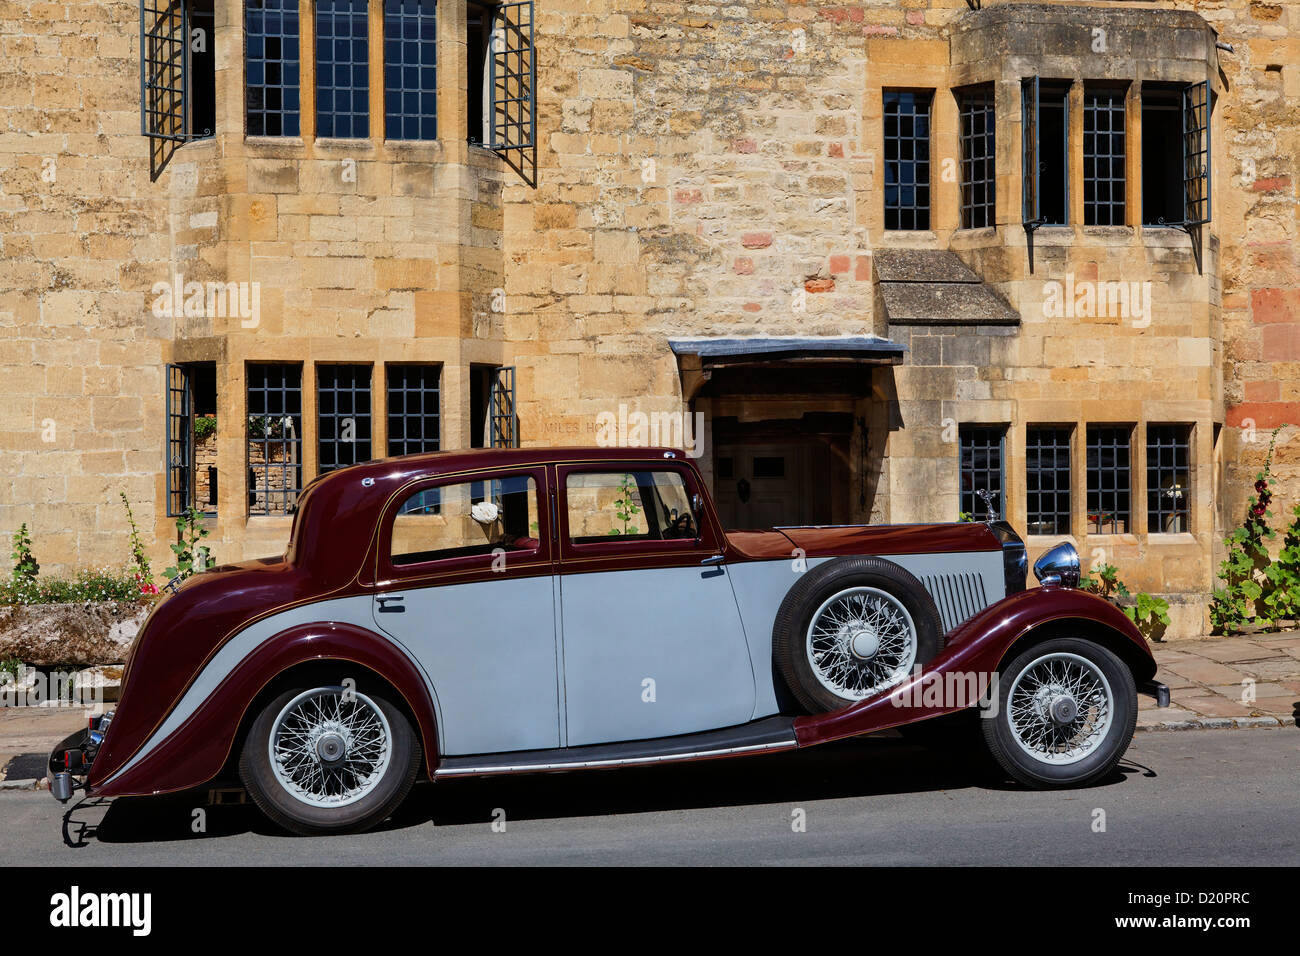 Classic car at High Street, Chipping Camden, Gloucestershire, Cotswolds, England, Great Britain, Europe - Stock Image